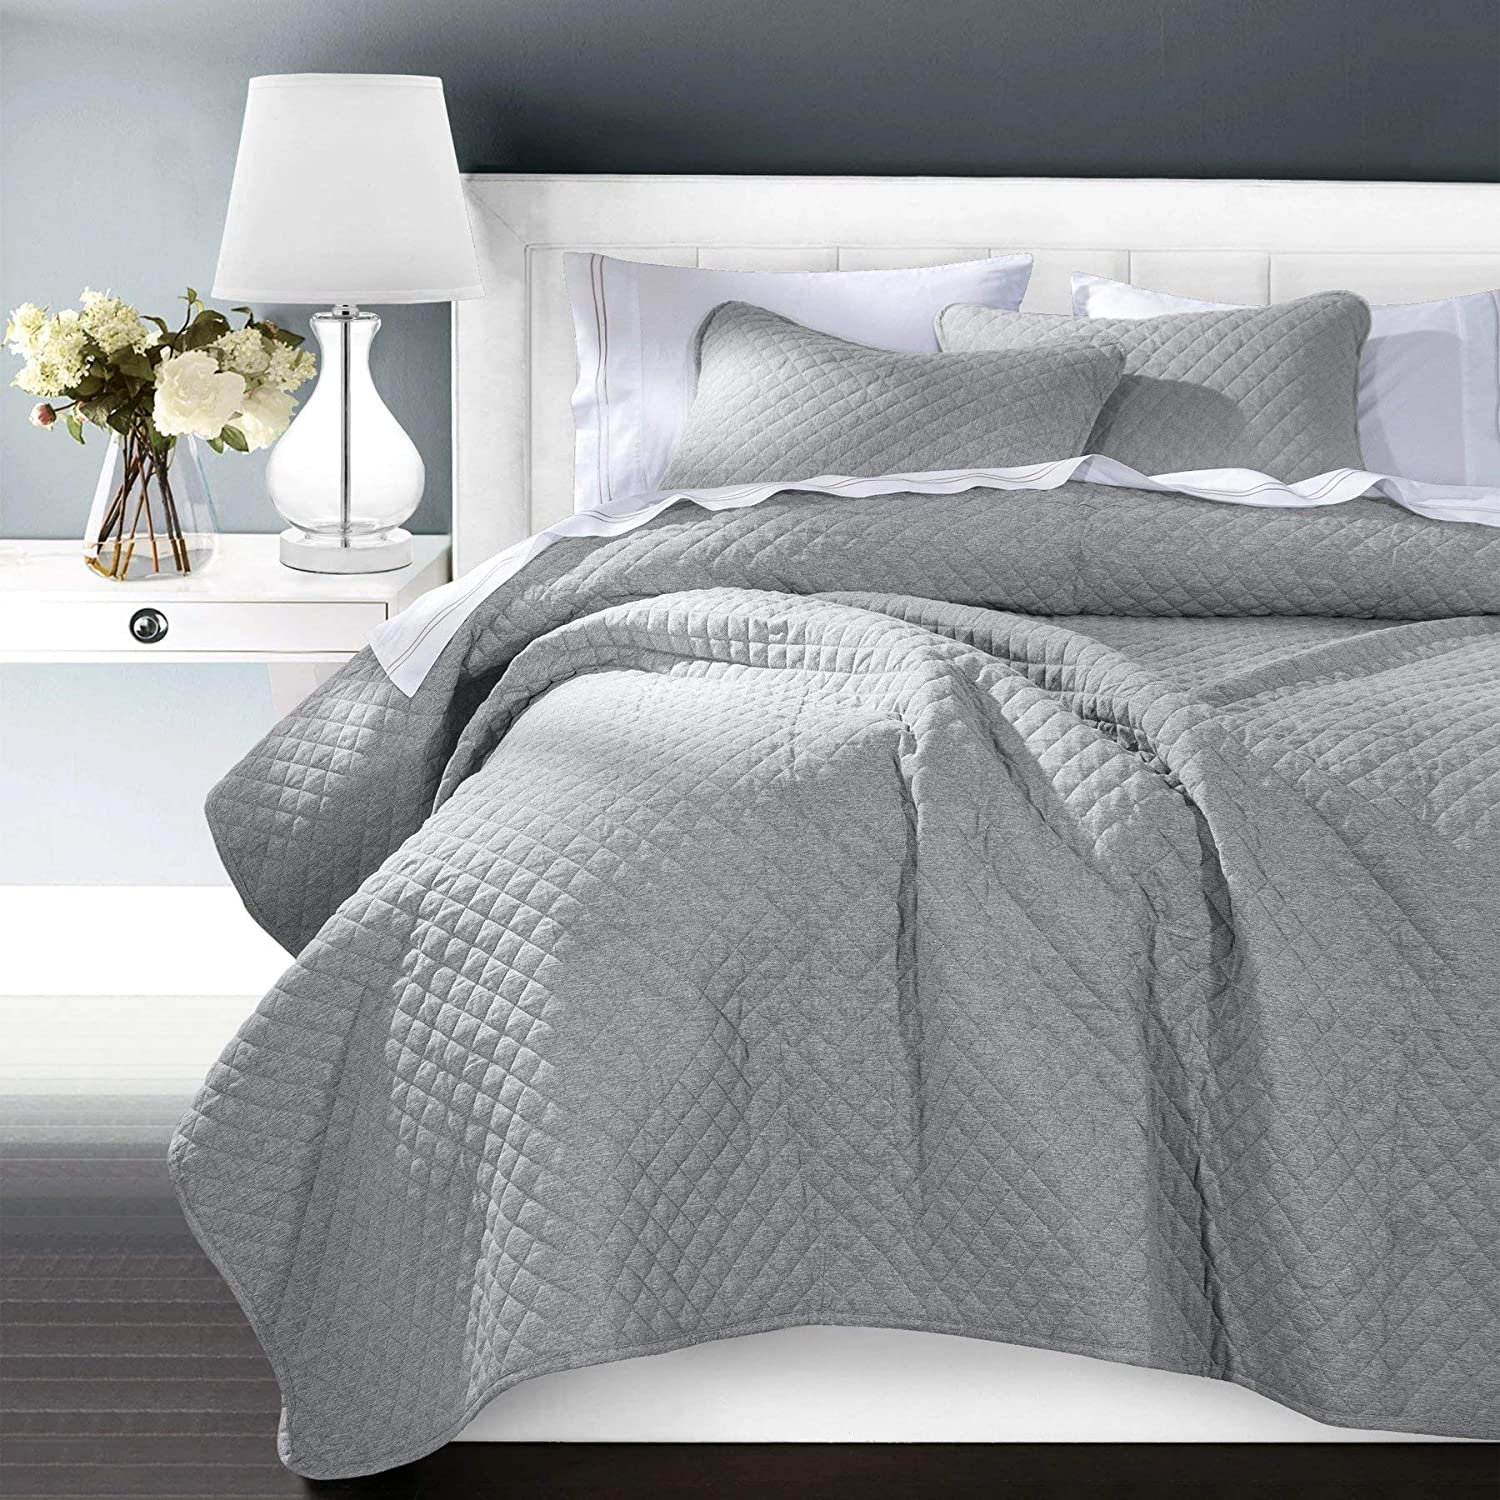 HiEnd Accents Anna Diamond Quilted (Soft Gray) Coverlet & Sham Bedding Set, Full/Queen